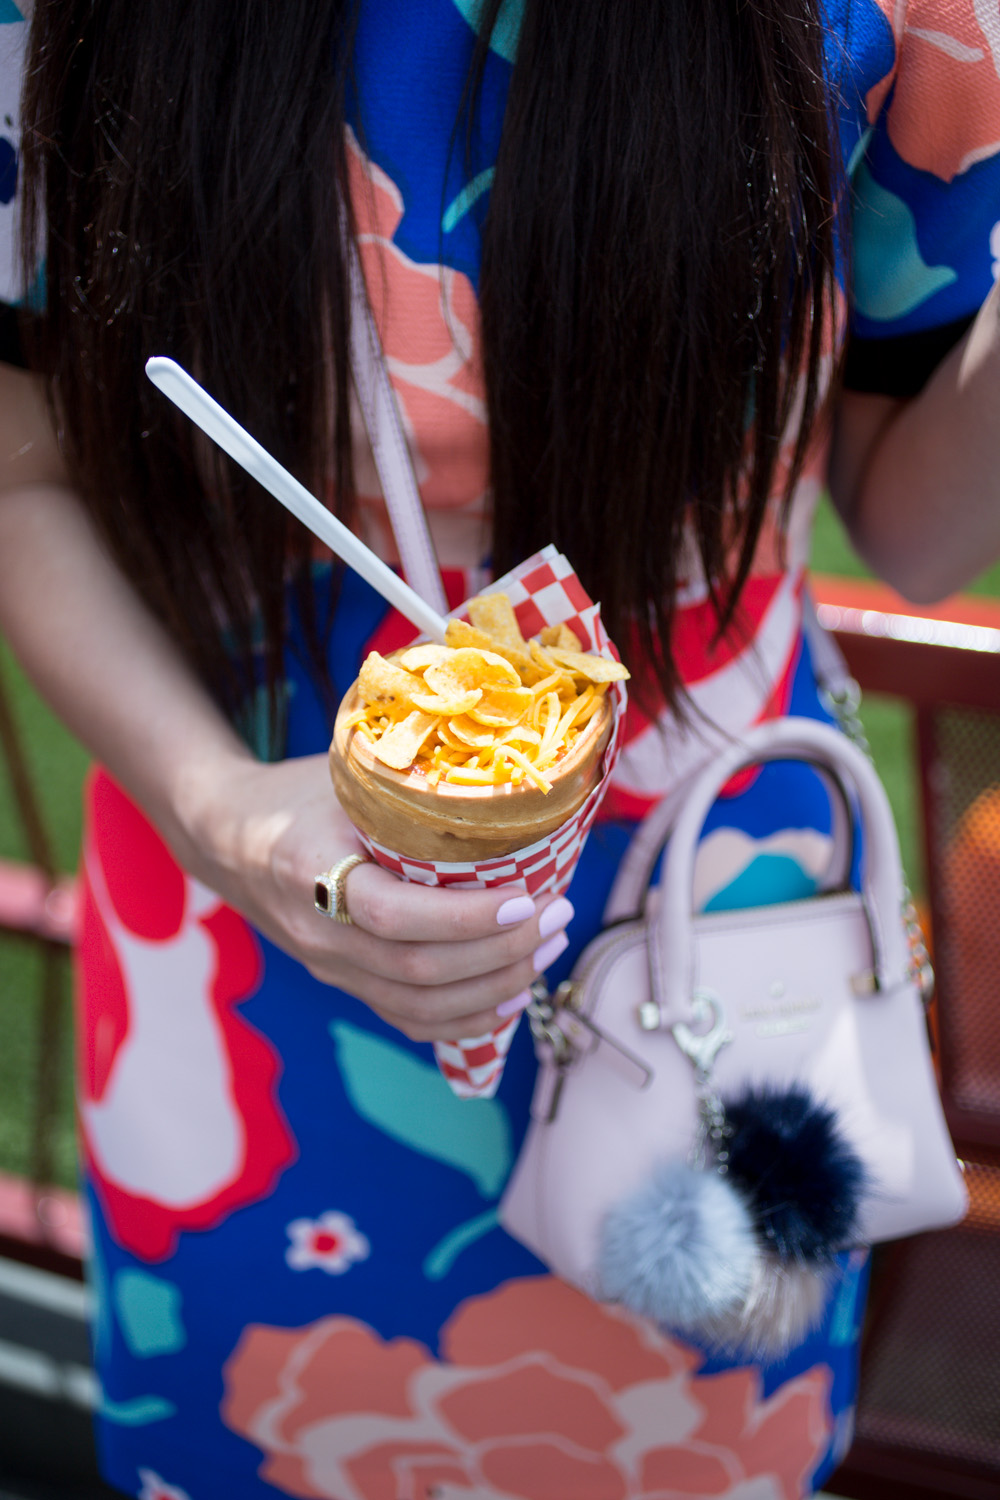 Disneyland Food Blog Review- Cars Land Cozy Cone Motel Chili Cone Queso